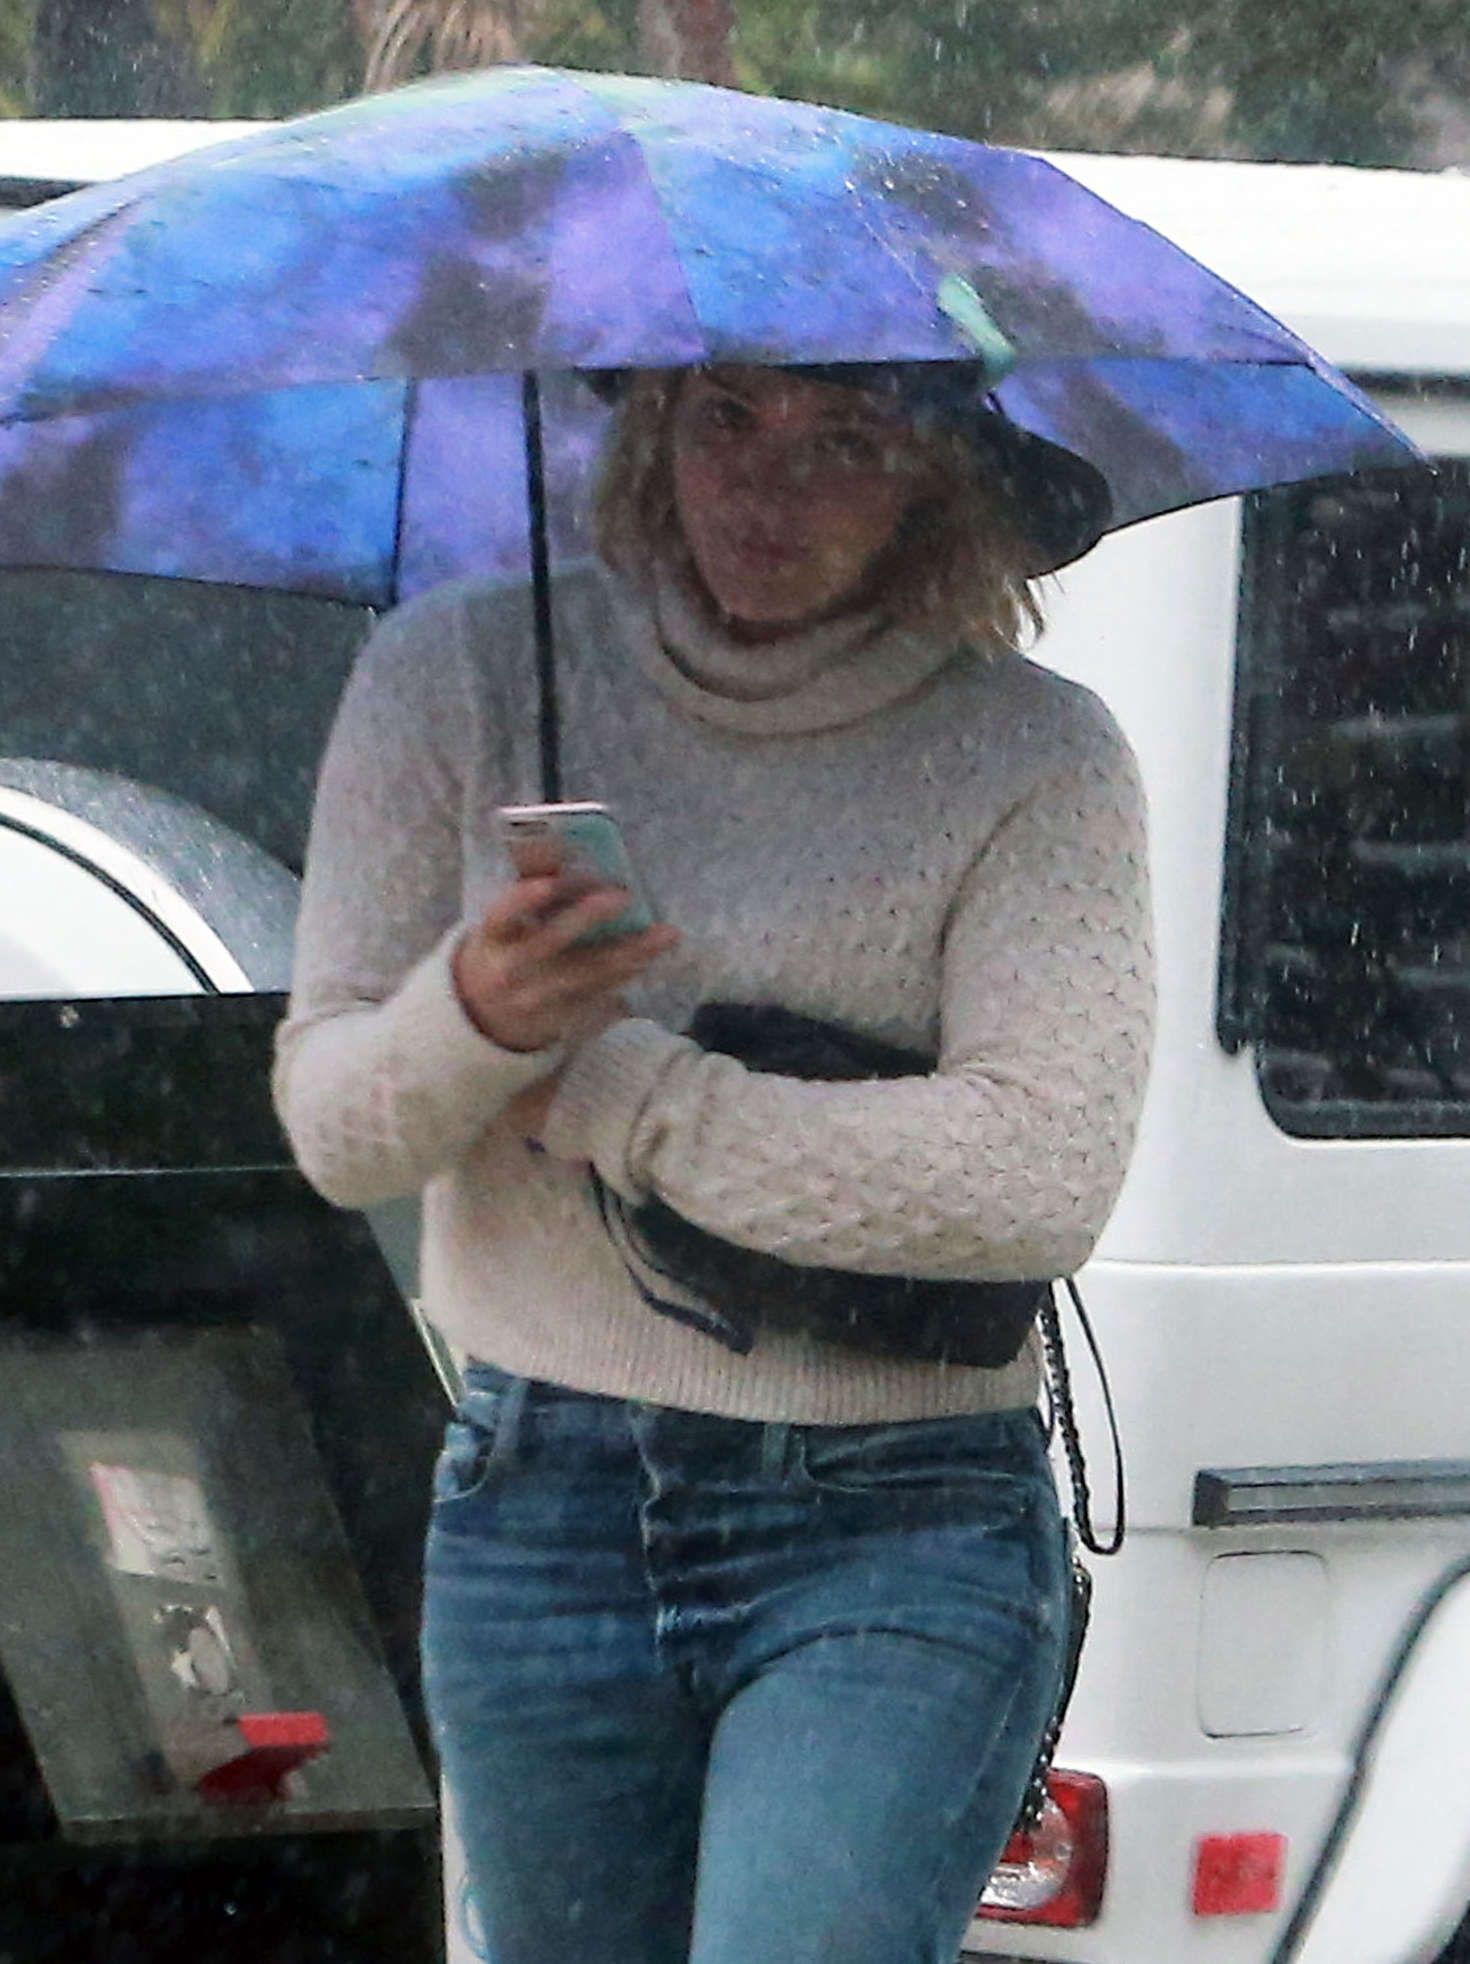 Hilary Duff 2016 : Hilary Duff in Jeans out on a rainy day -22